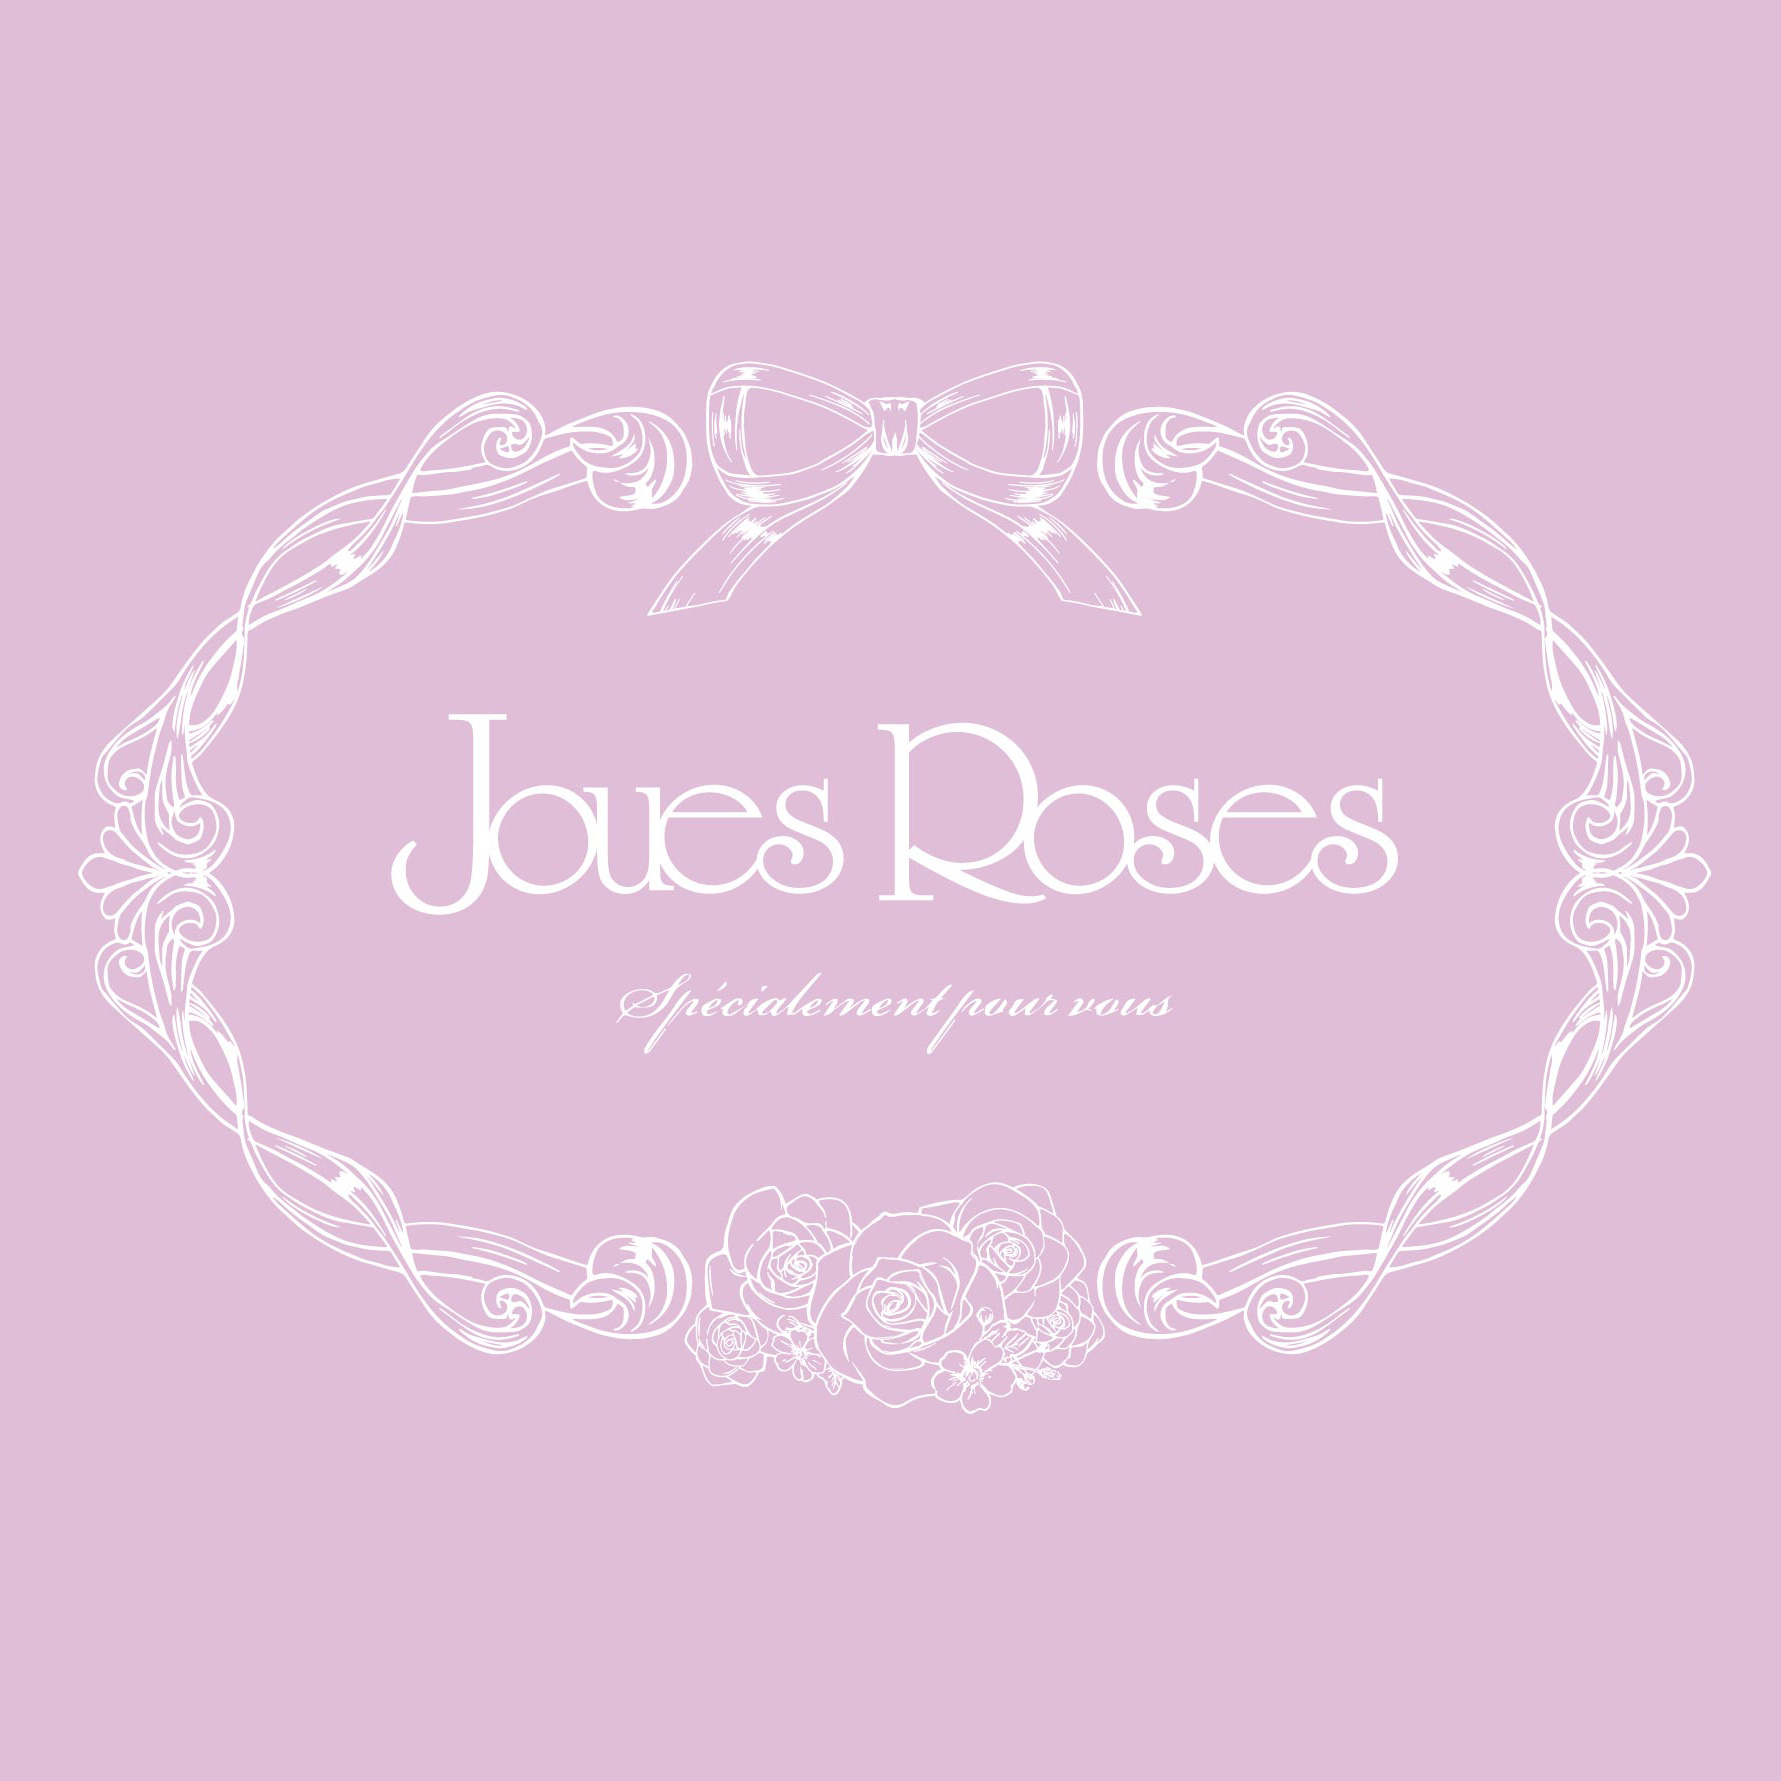 Joues Roses - ジュローズ